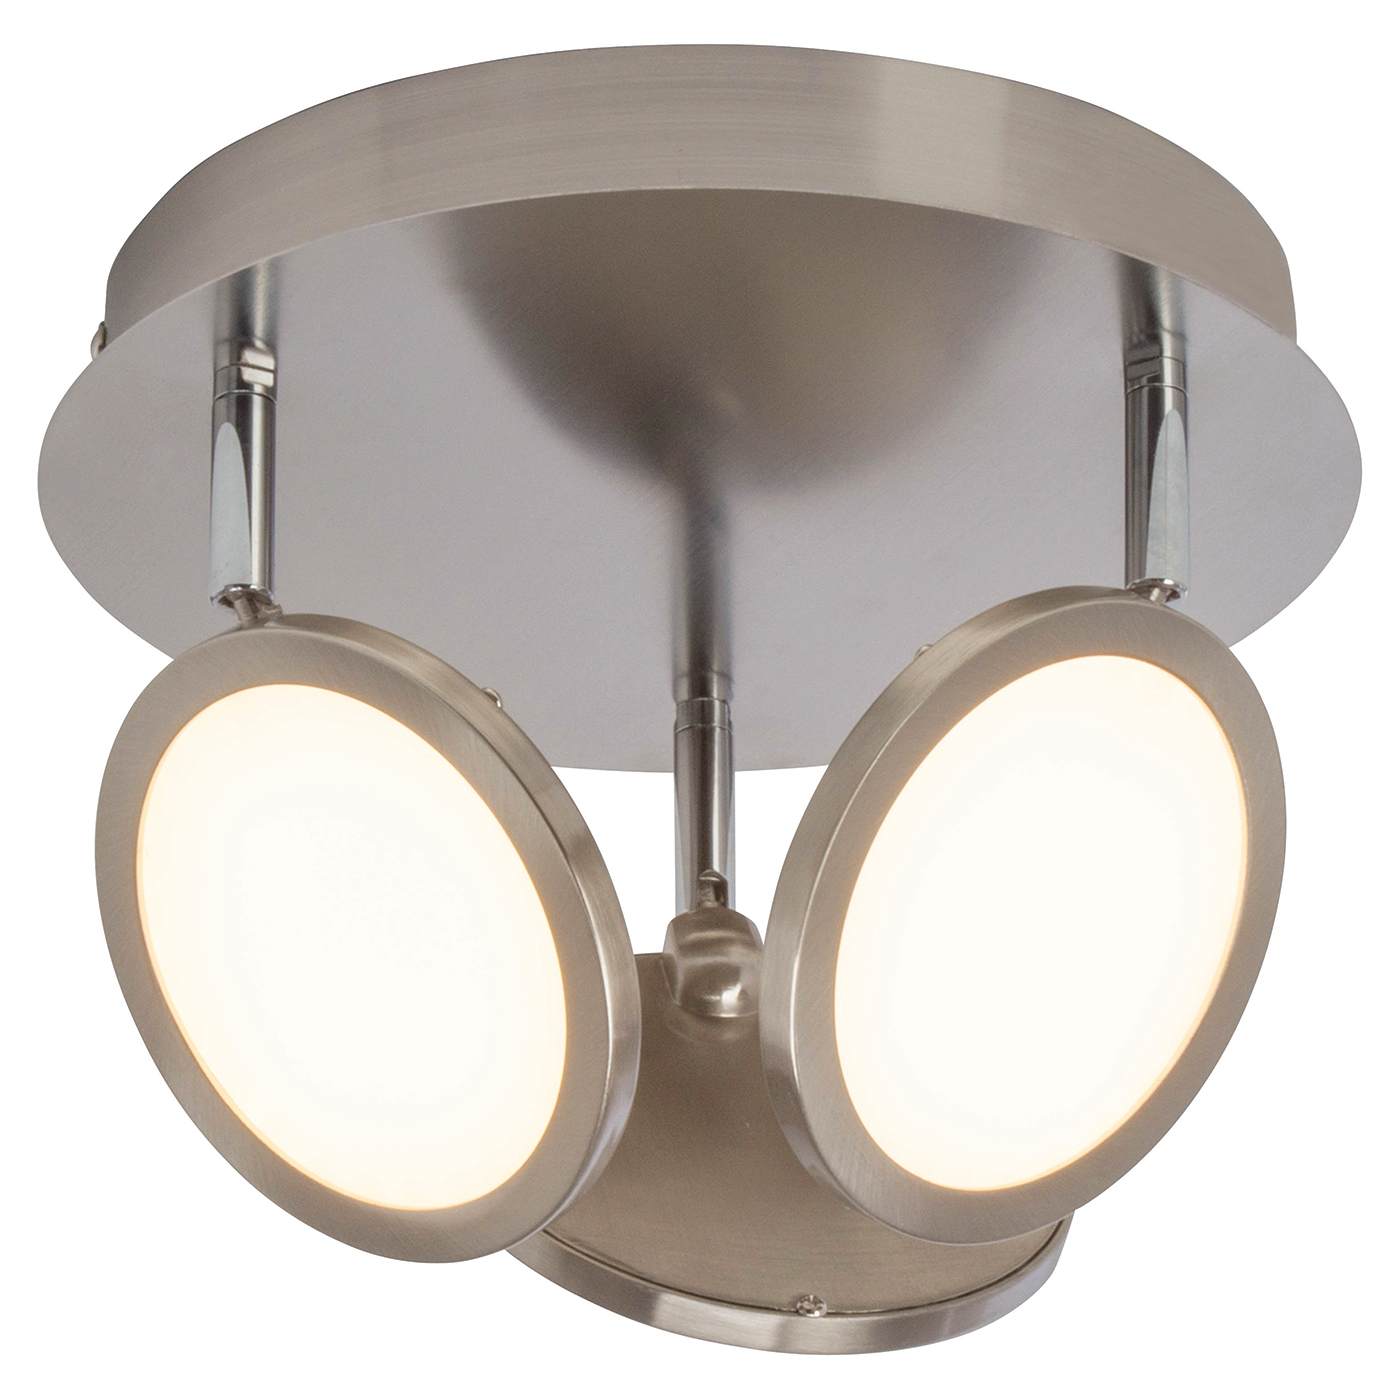 Endon Pluto ceiling spotlight round 3x 5W Satin nickel effect plate opal plastic